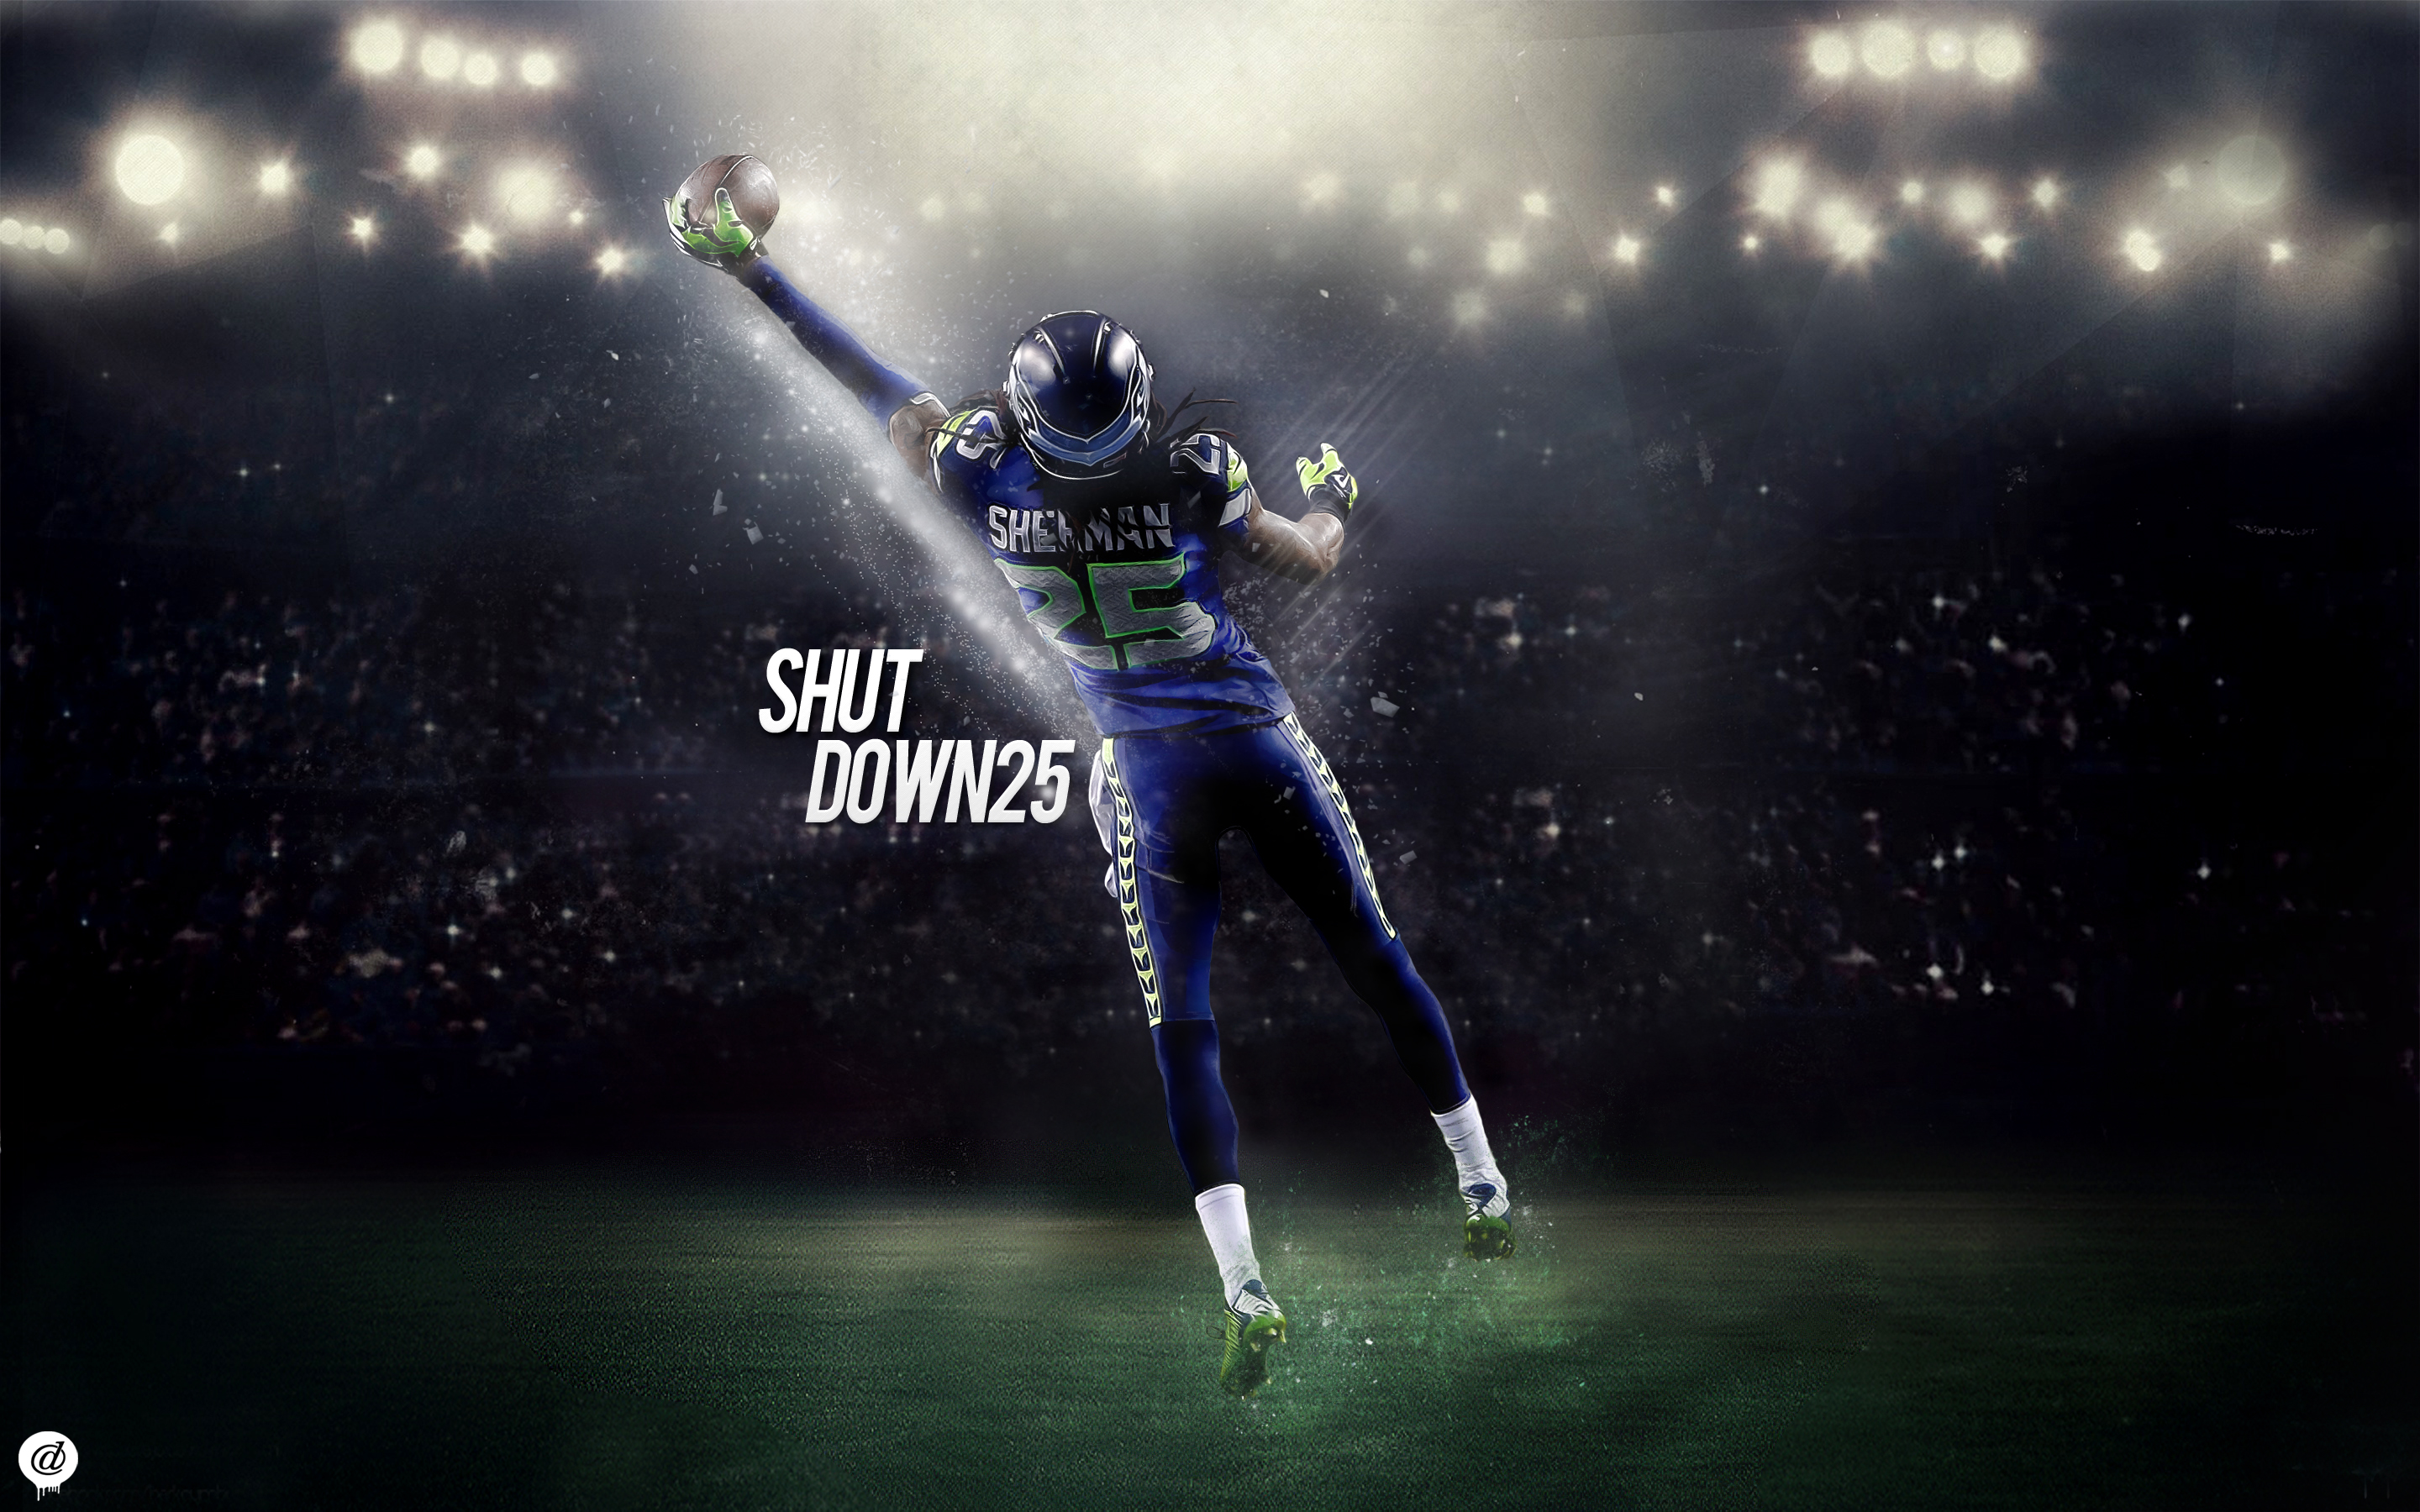 Richard Sherman Seattle Seahawks Shutdown25 by 31ANDONLY 2880x1800